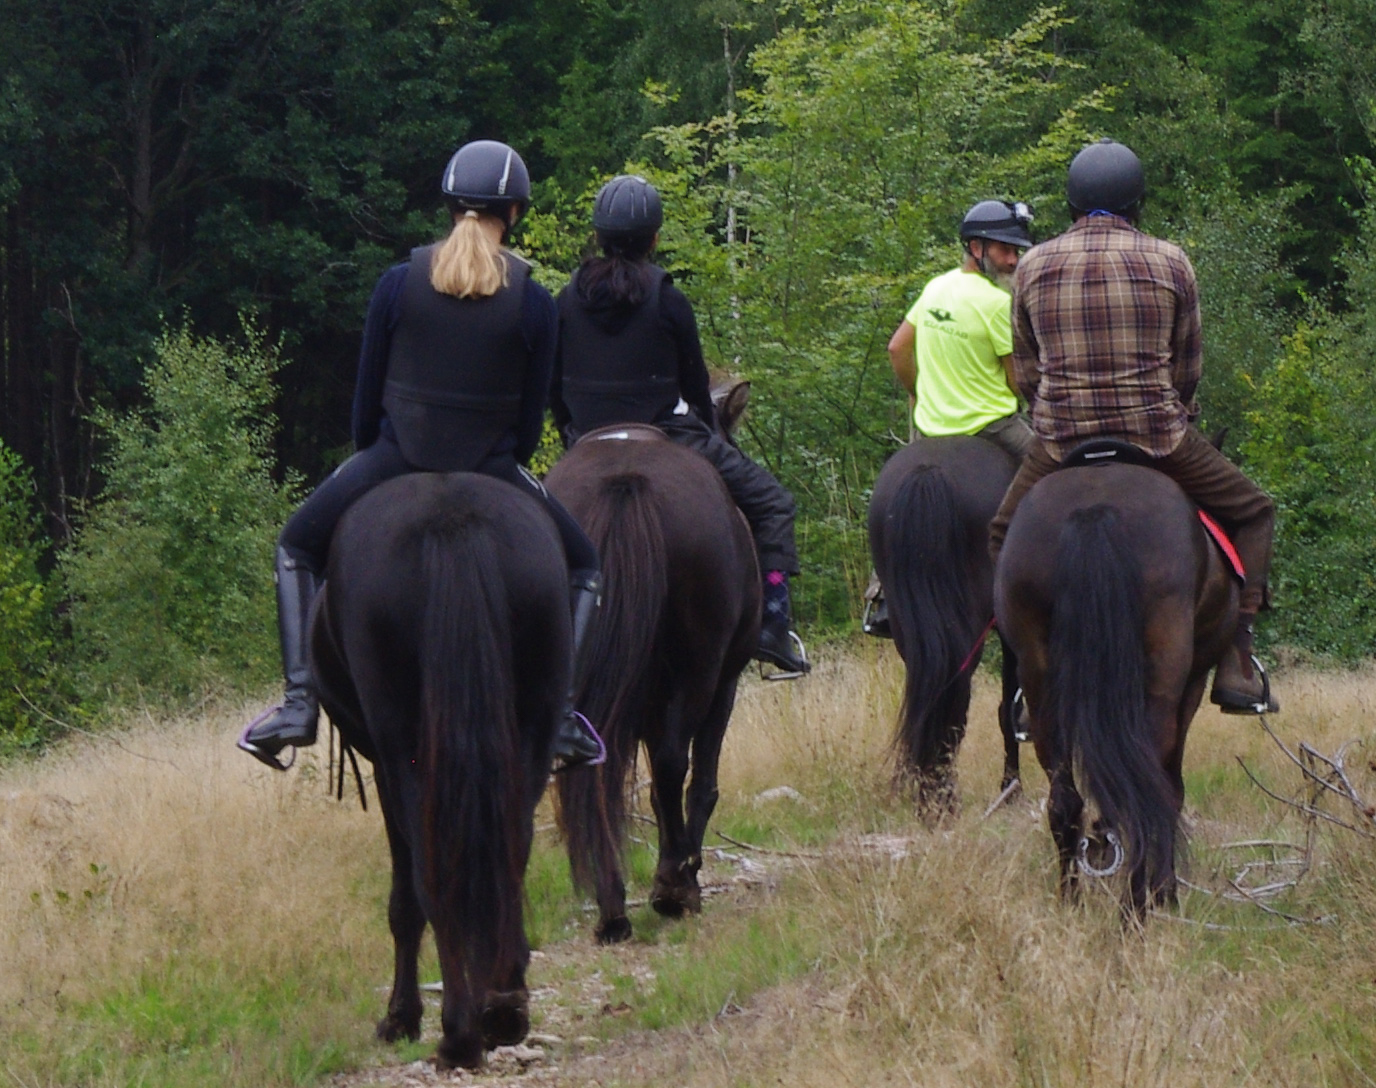 Checking-Ride-Group-während des Reitens Galleri-sparrarpislandshastar.com | 2020